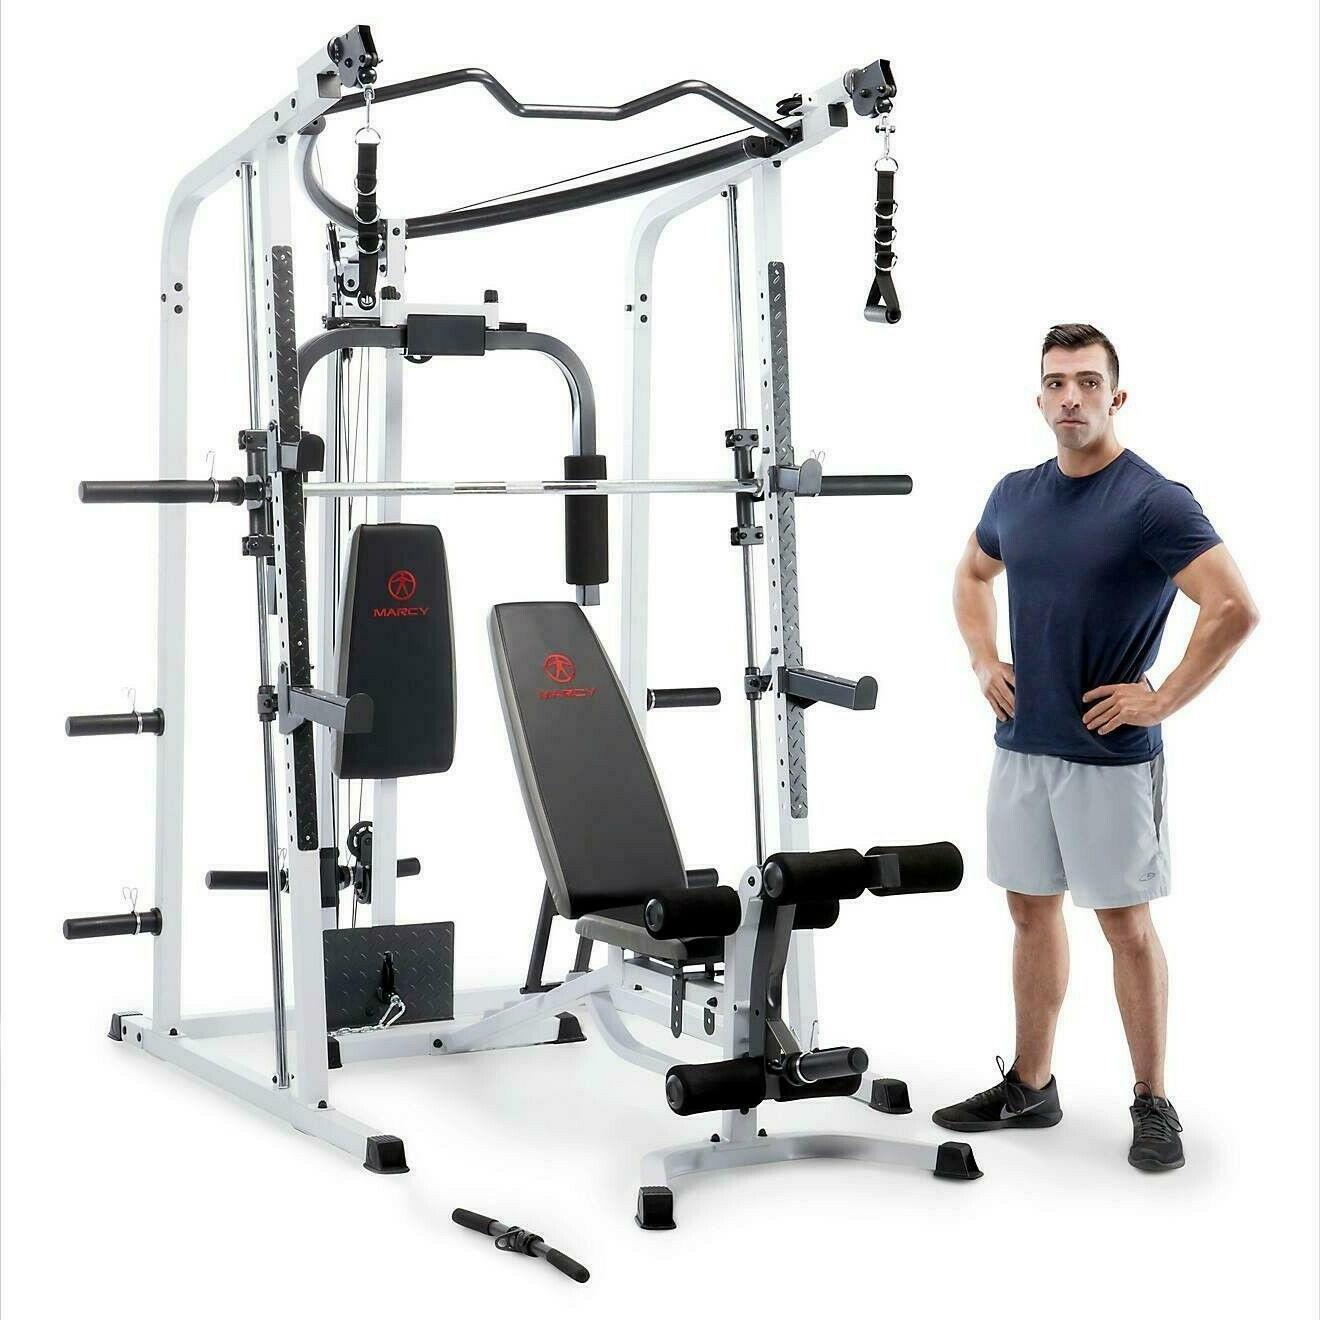 new md 5191 smith cage home gym